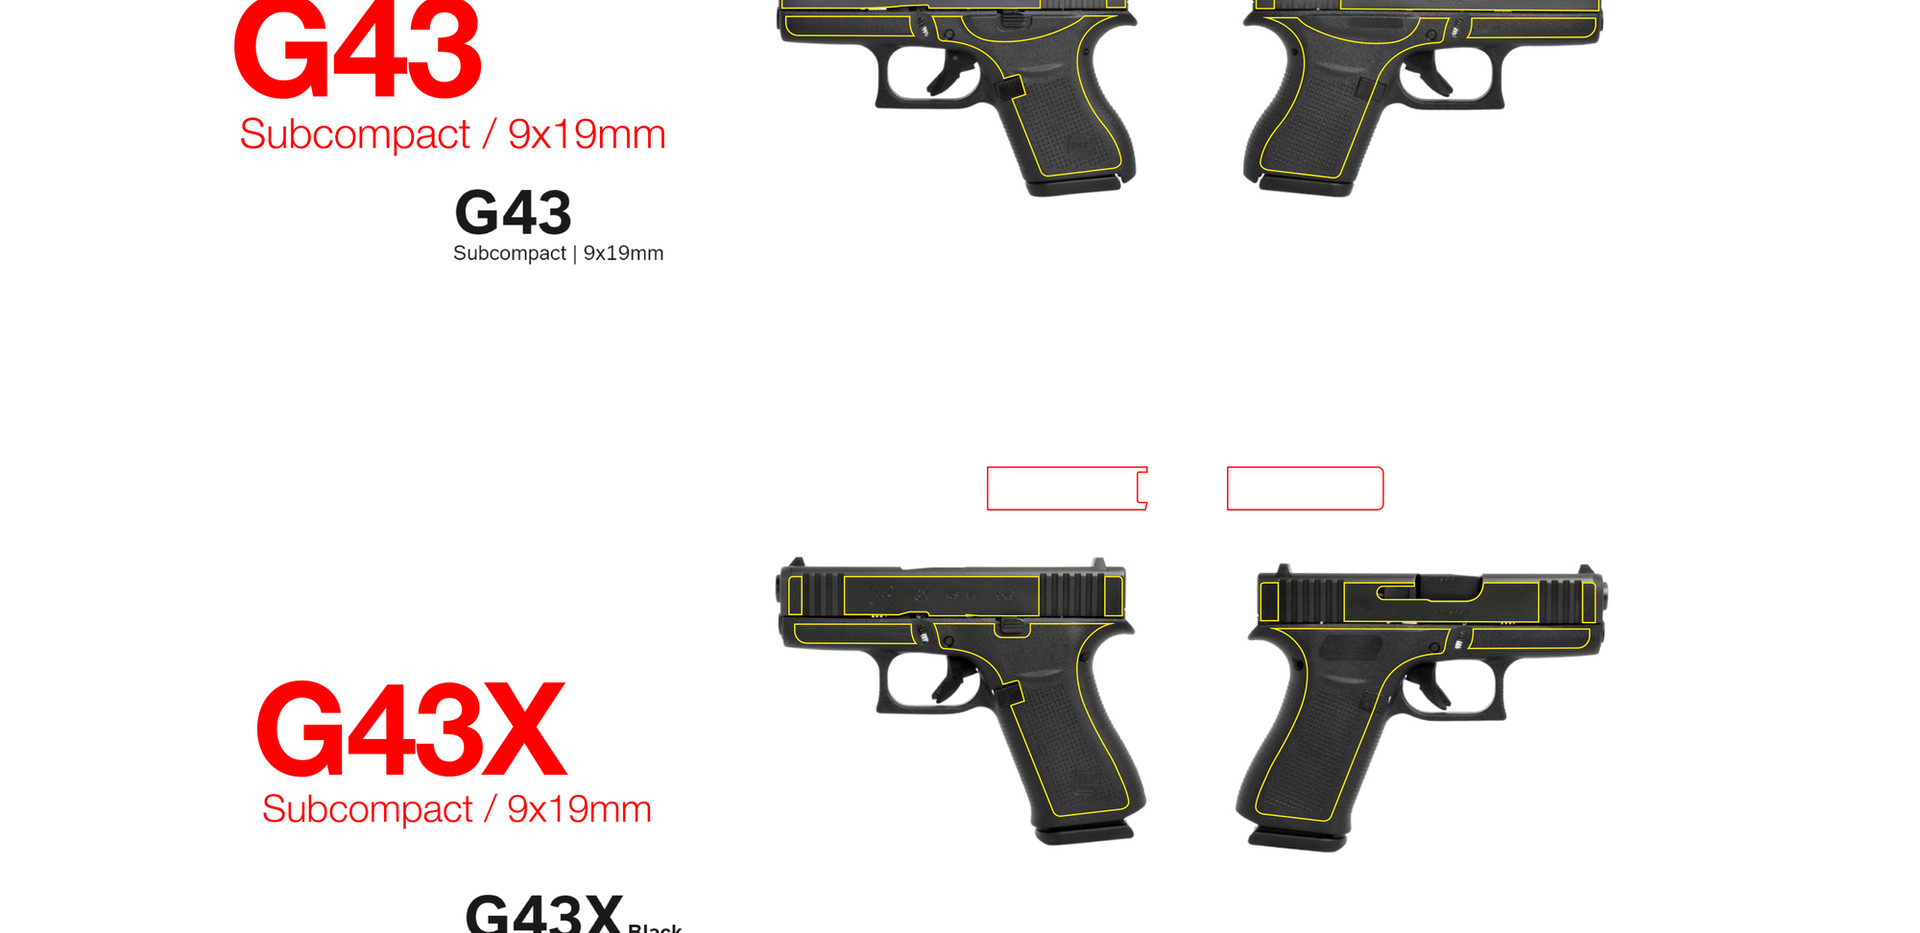 Glock Templates for Laser Engraving Firearms